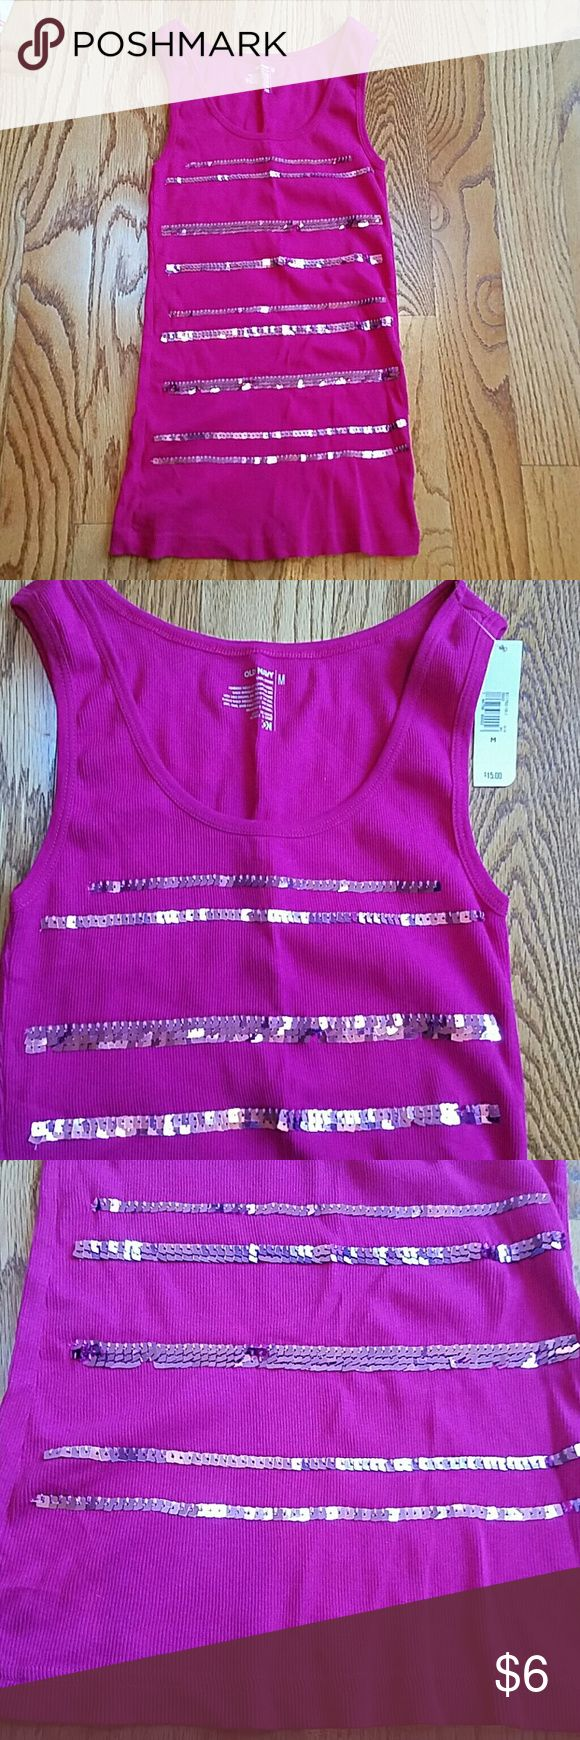 Pink sequin tank top NWT, Old Navy sequin tank. Size M, Old Navy Tops Tank Tops